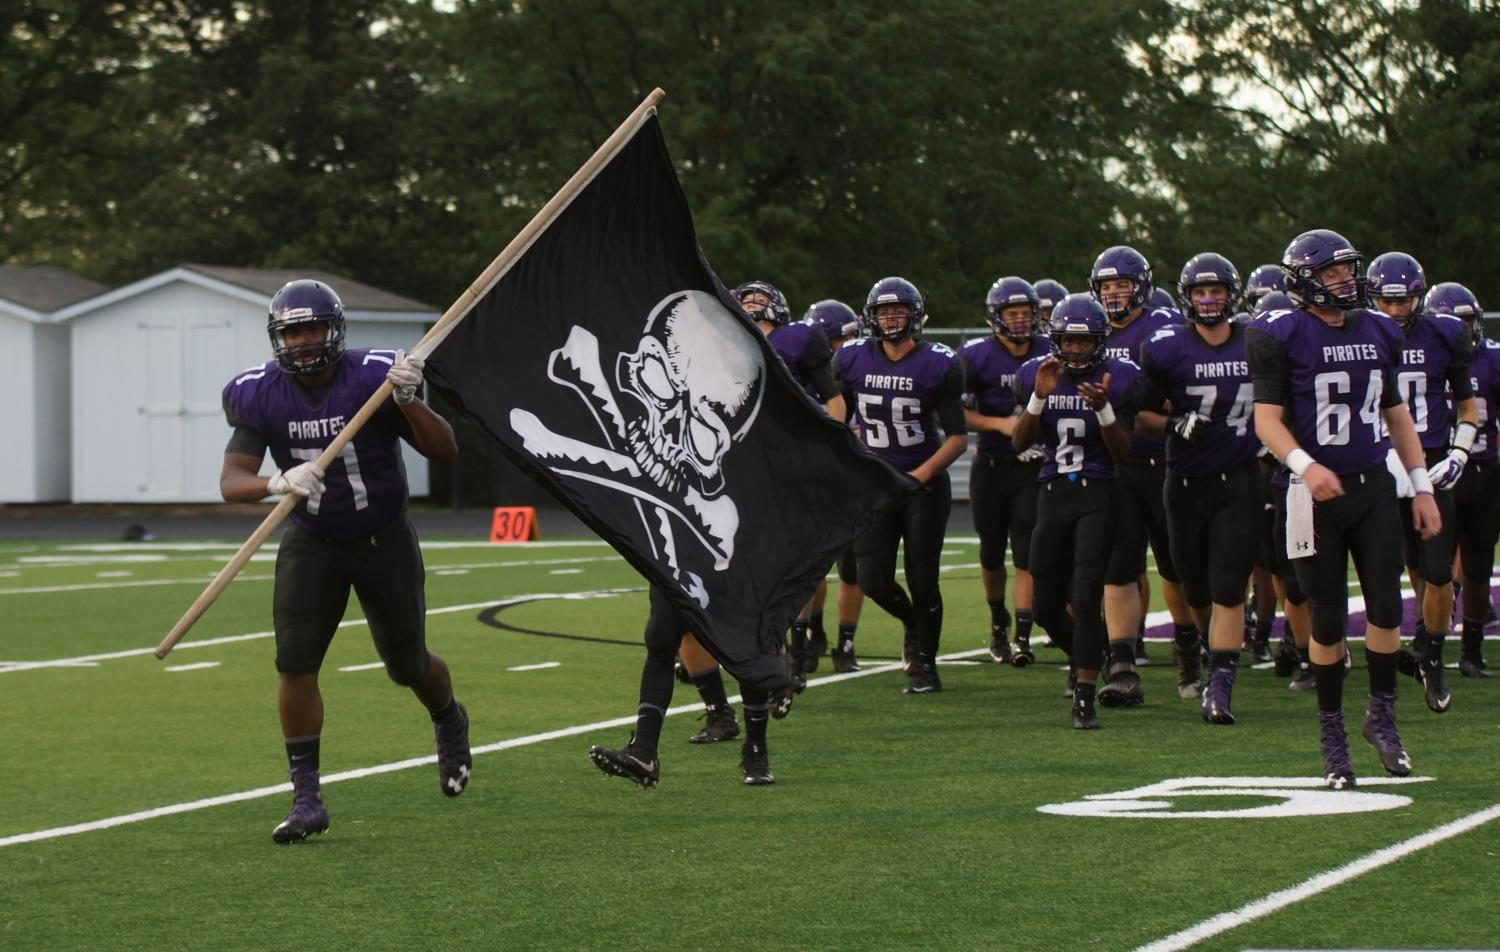 Seniors Micaiah Noel, J.J. Letcher and Dirk Beashore led the Pirates out before the homecoming matchup against Bonner Springs. The Pirates won 33-20.  With 27 victories and 4 playoff appearences, the class of 2017 has the fourth most wins in school history.